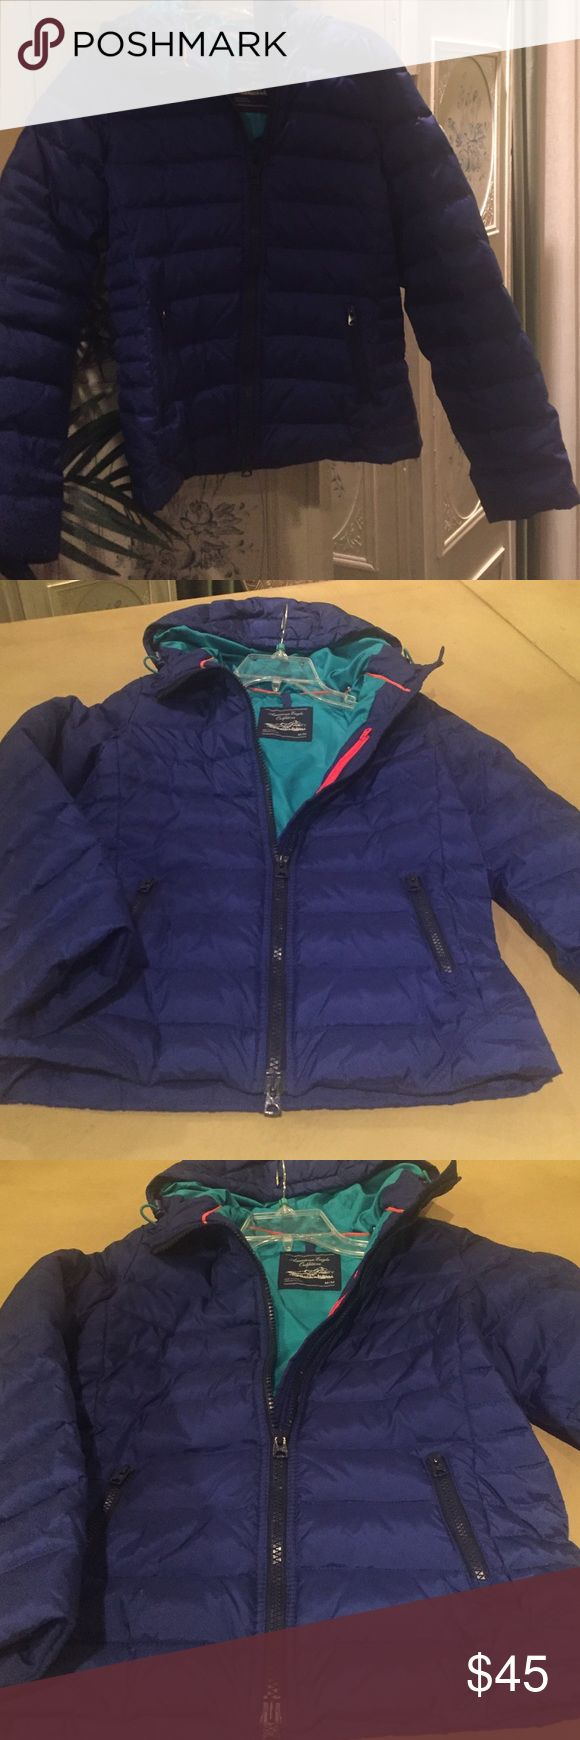 American eagle outfitters jacket Beautiful size medium eagle outfitters blue jacket. In great condition rare find American Eagle Outfitters Jackets & Coats Puffers